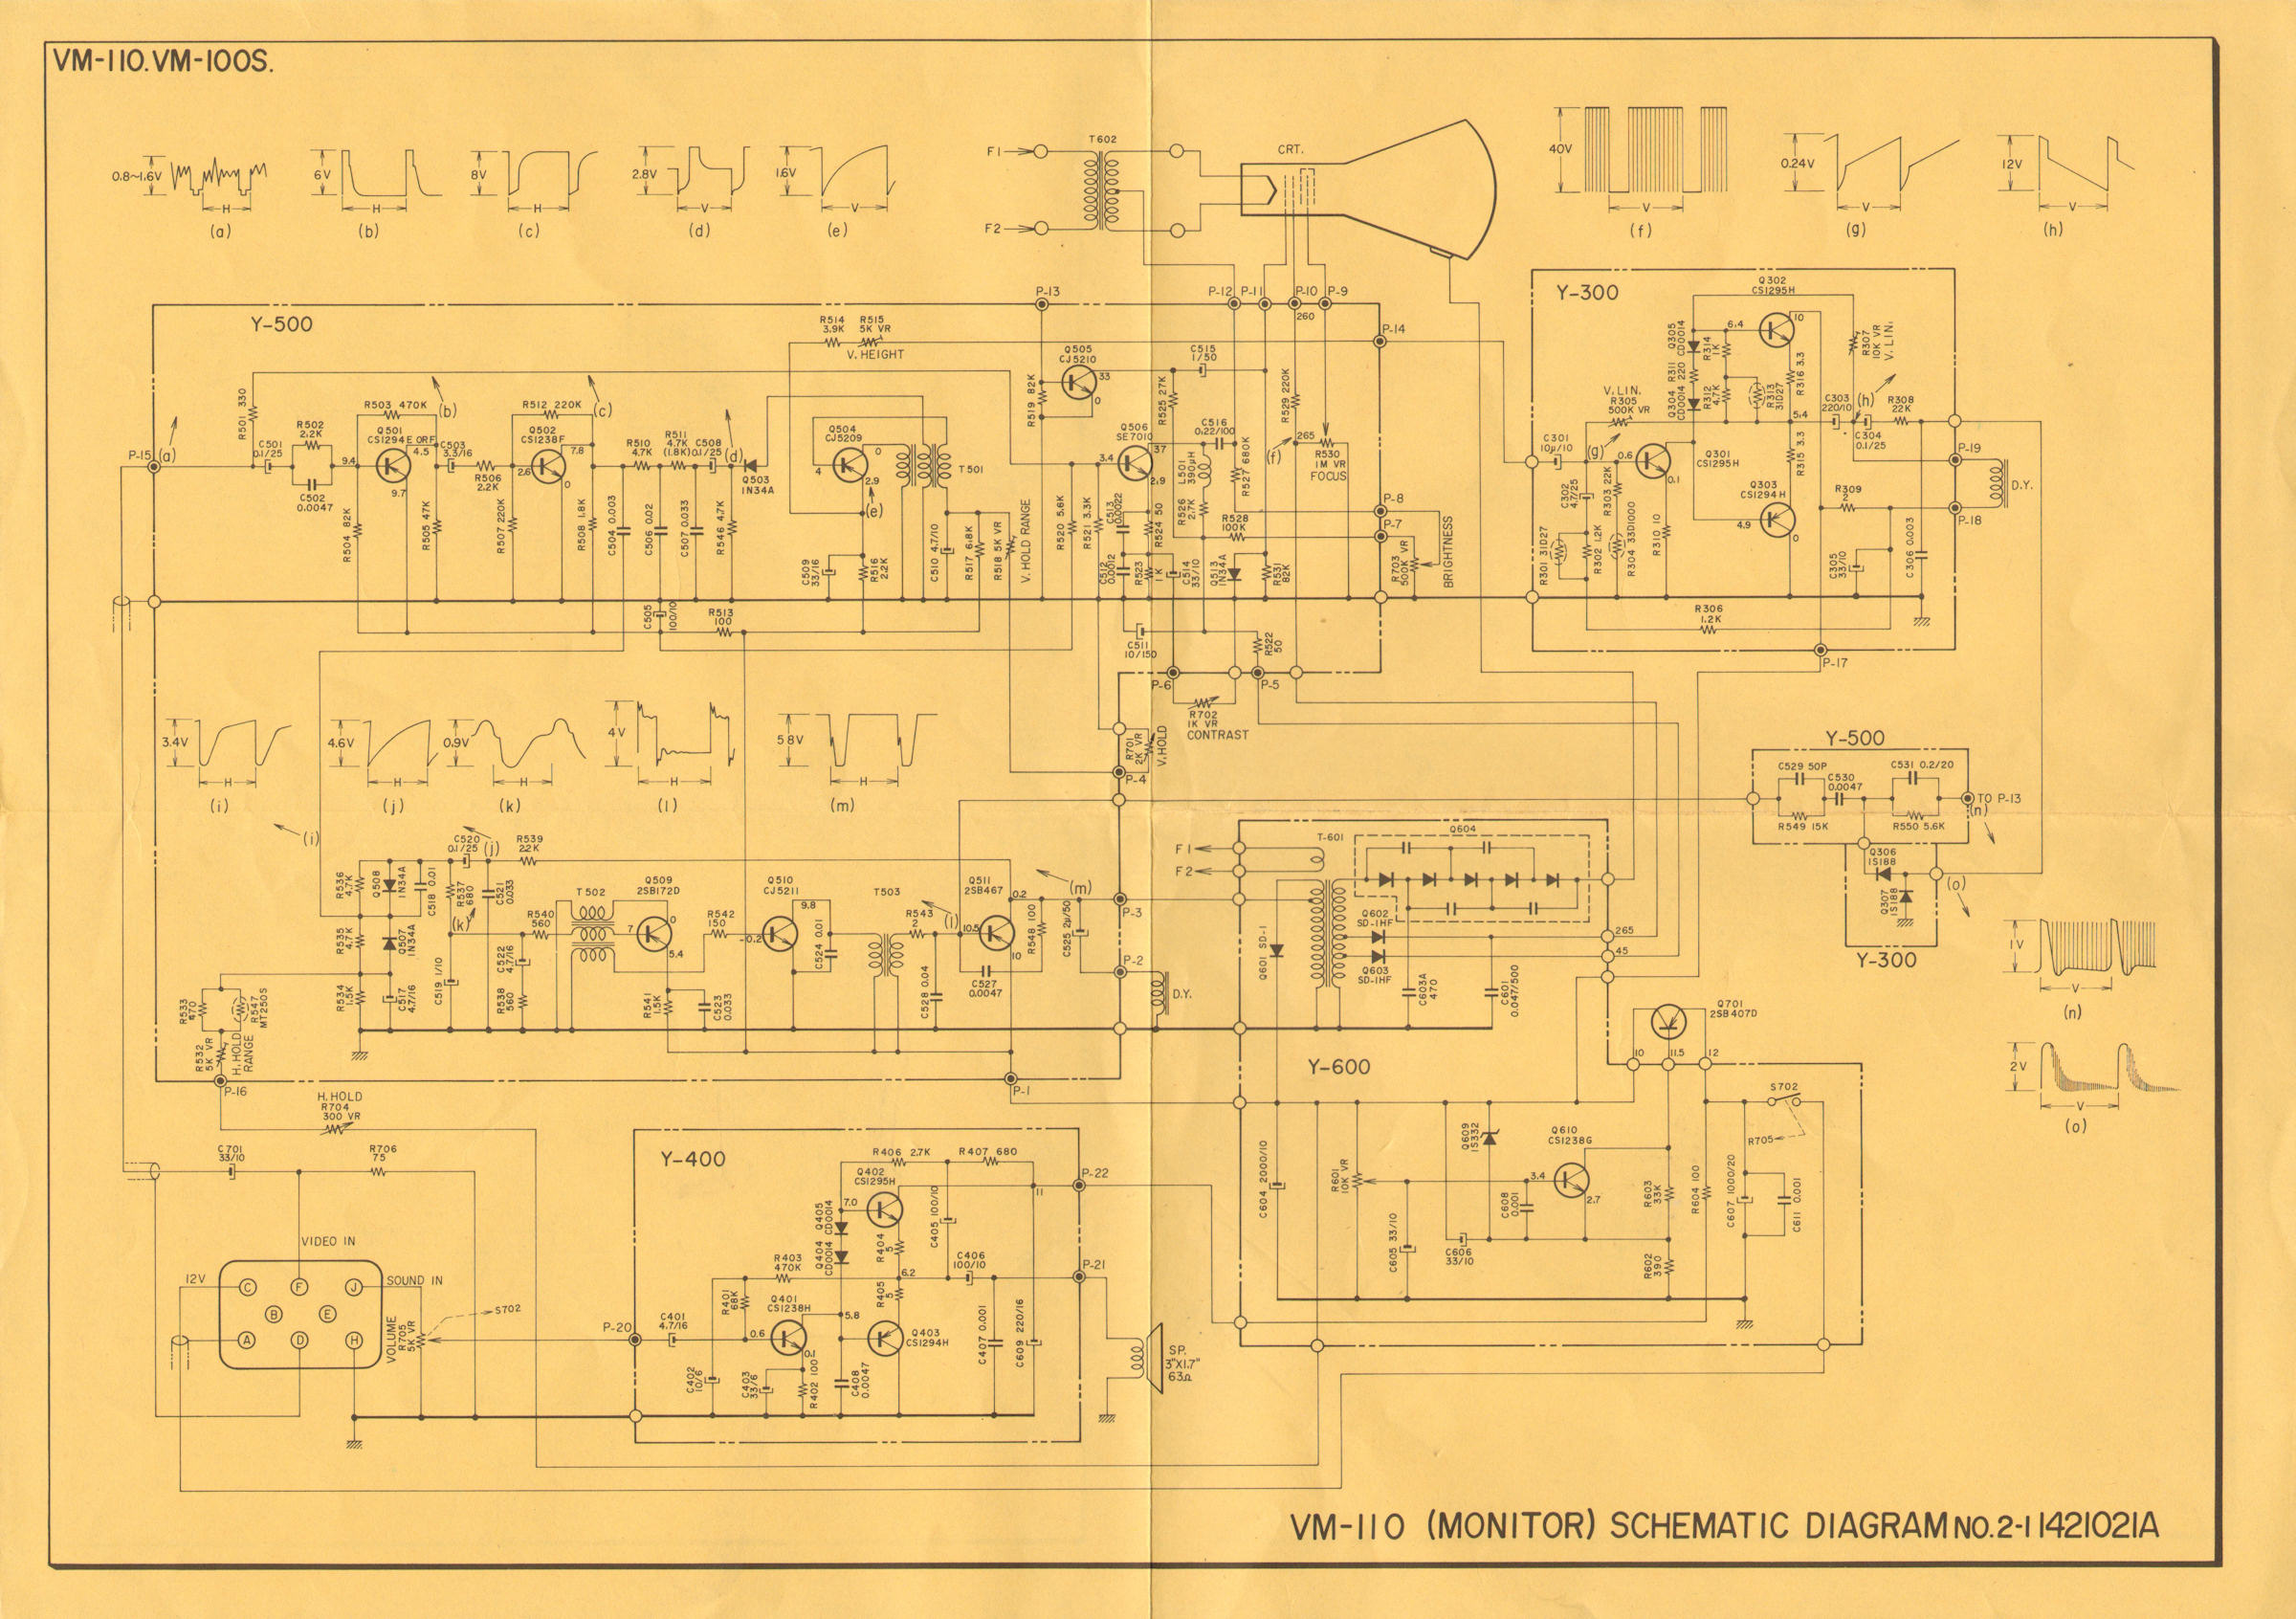 Luy's World: 'Goldmark I' - Field Sequential Color TV Project on tv board diagram, tv circuit section, tv component diagram, lg tv diagram, block diagram, china tv diagram, sanyo tv schematic diagram, tv water diagram, tv electrical diagram, tv circuit wire design, television diagram, tv construction diagram, tv circuit boards, tv filter diagram, tv circuit parts, tv sound diagram, tv cable diagram, rca tv schematic diagram, tv capacitor diagram, stage layout diagram,